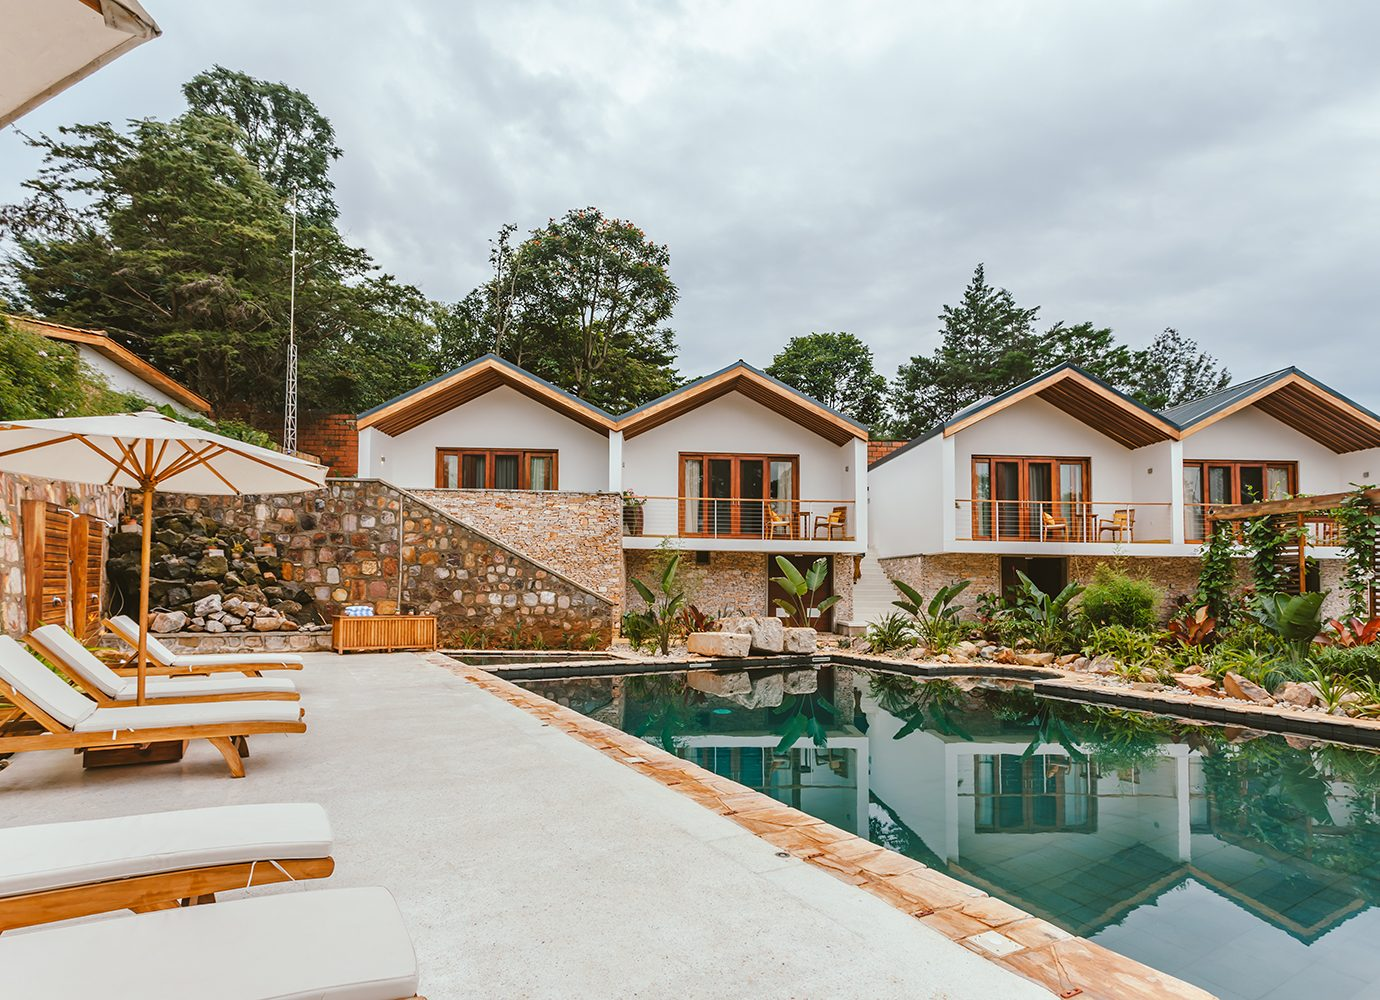 The Retreat at Heaven Rwanda pool